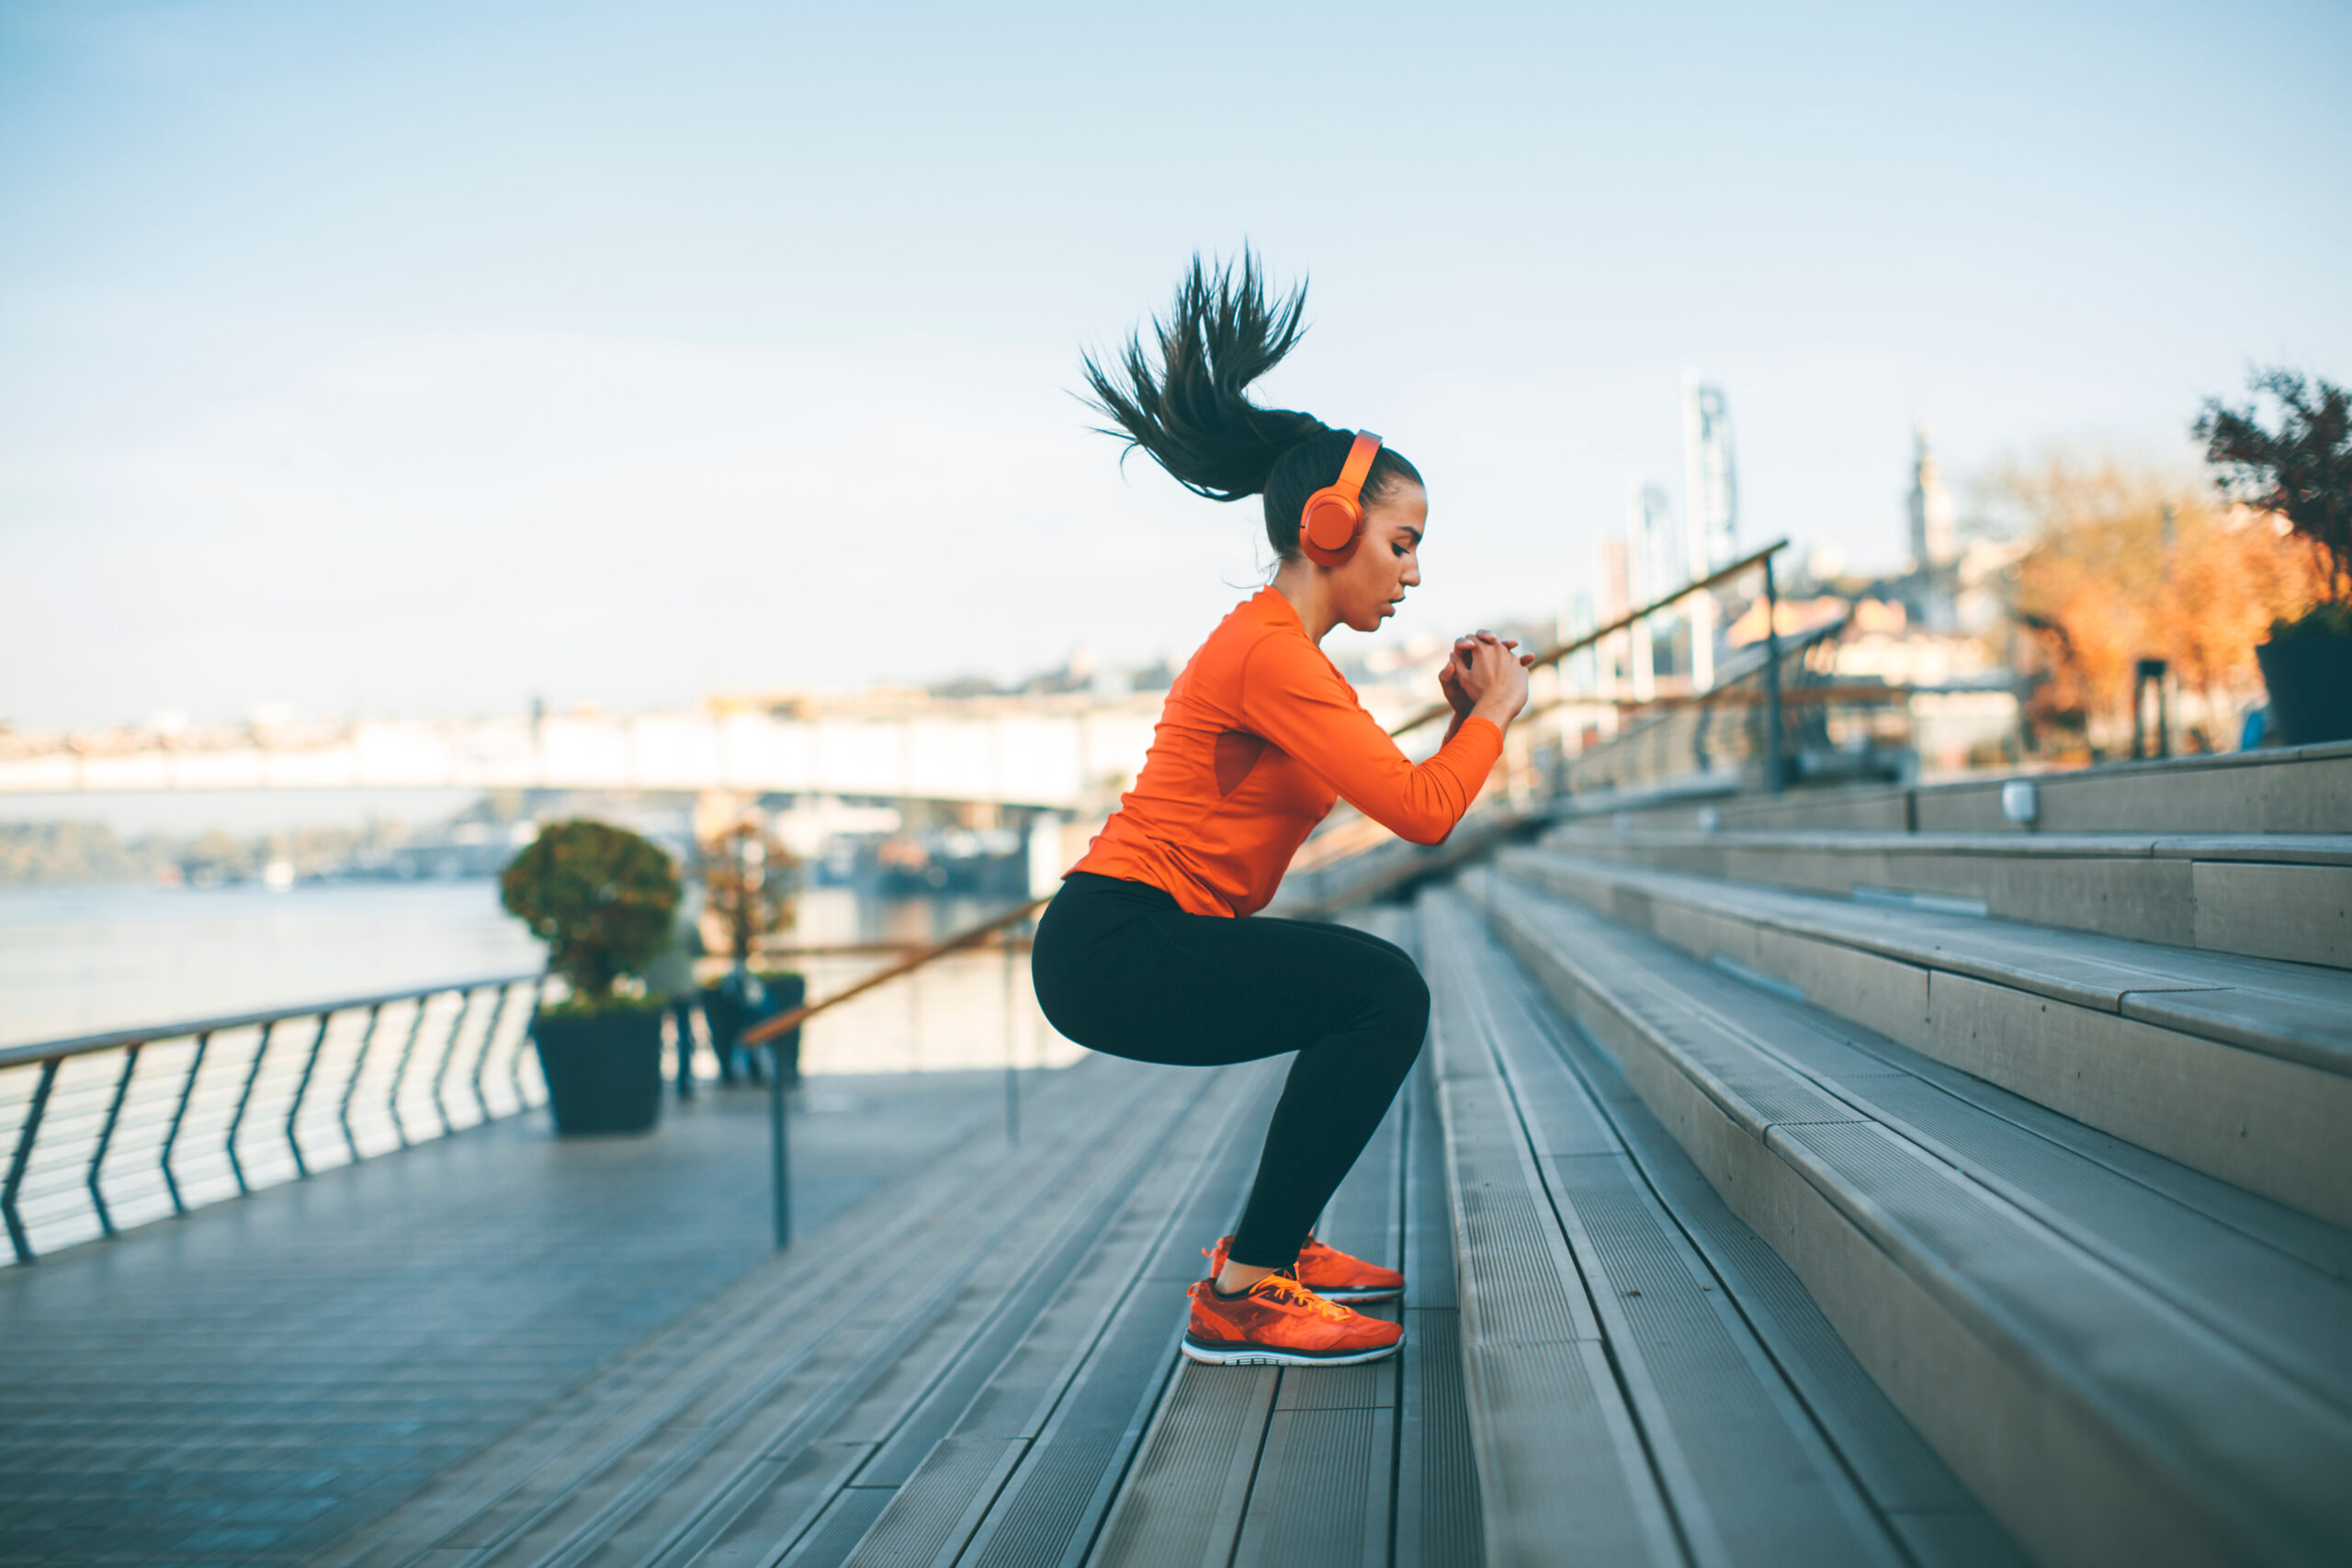 openfit review- woman wearing orange shoes, shirt and headphones with black workout leggings jumping in an outdoor setting